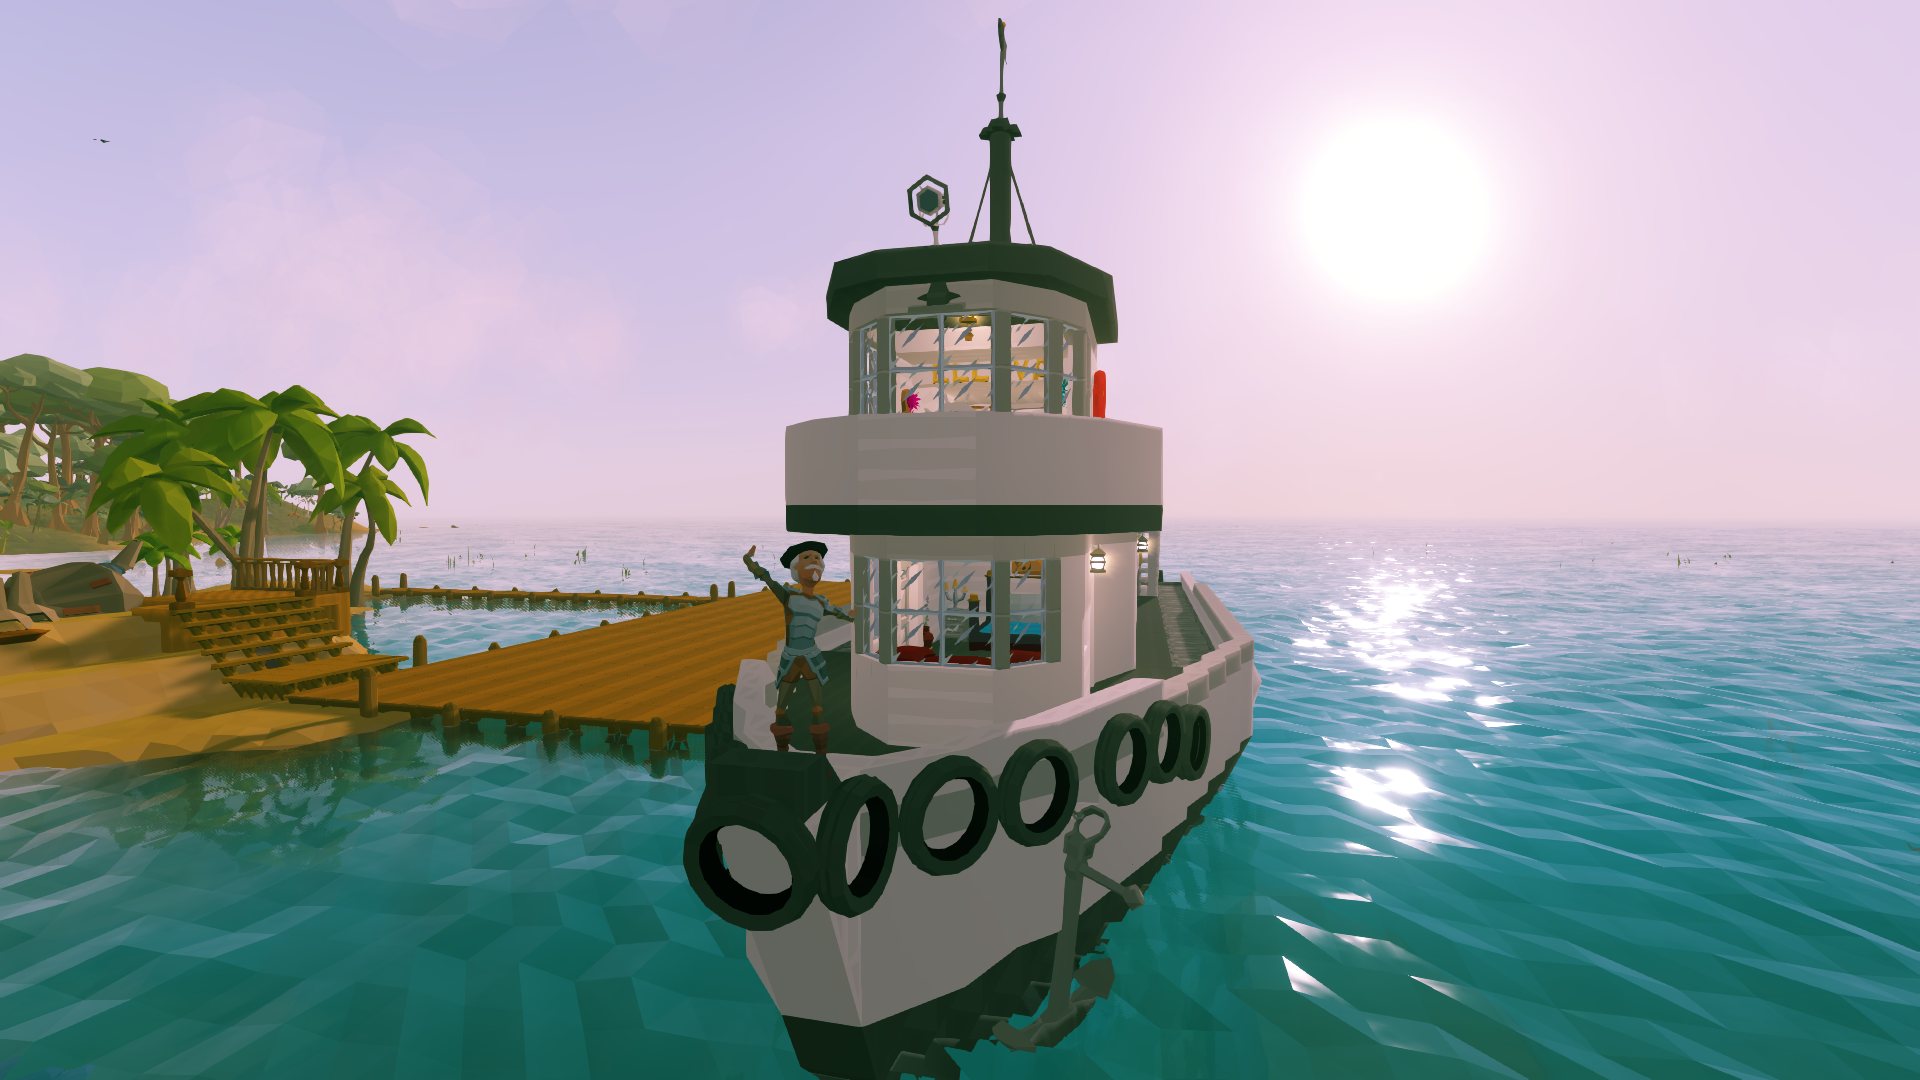 How To Unlock A Door >> Steamer Tug Boat - Community Creations - Ylands